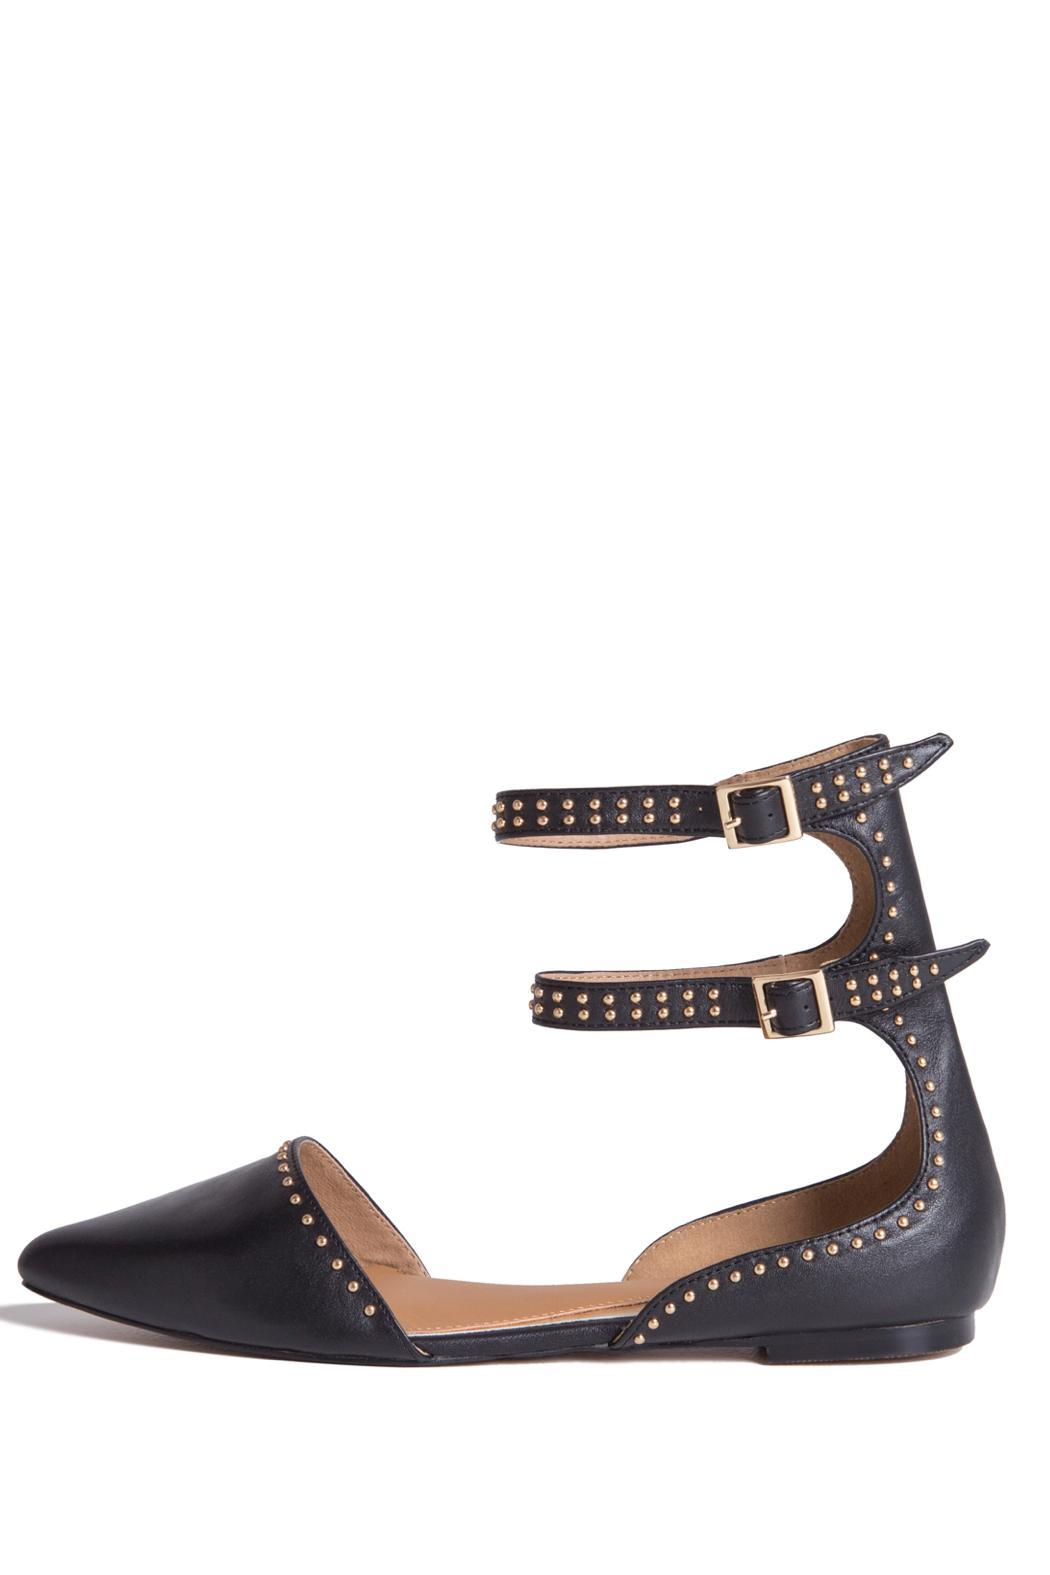 Jaggar Footwear Studded Aperture Flats - Front Cropped Image